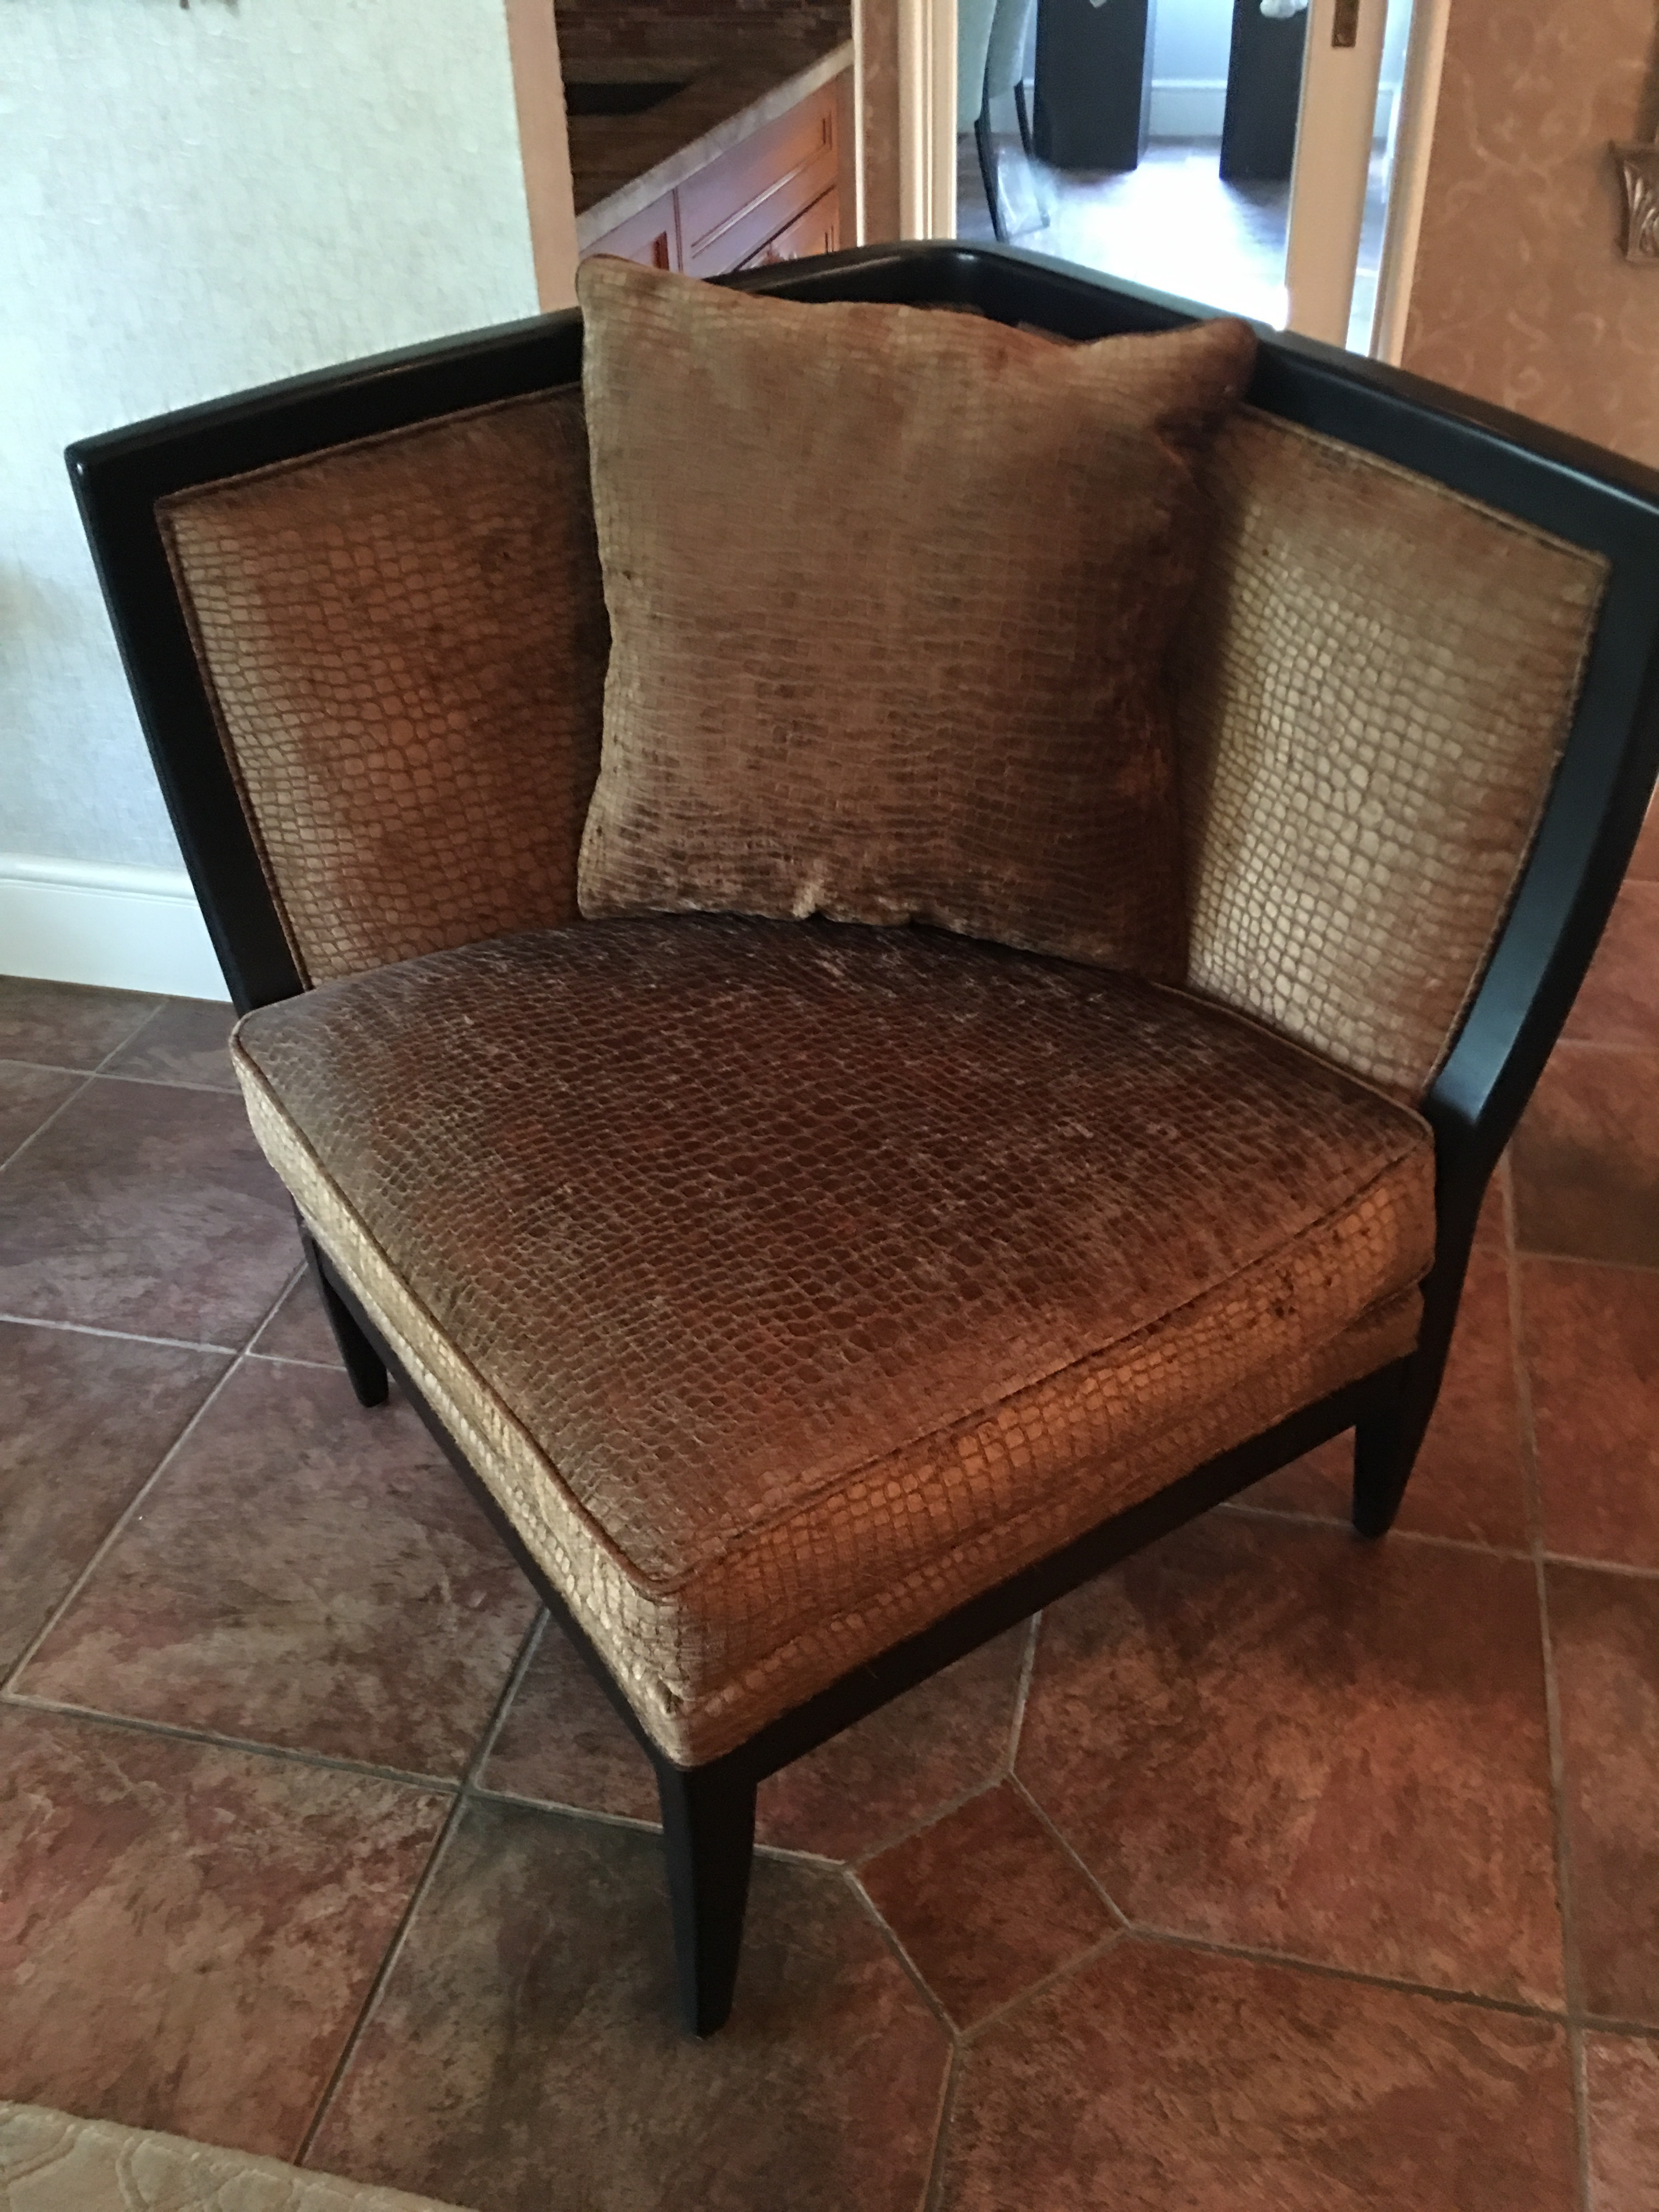 Large Dark Gold Reptile Pattern Chairs By Century Furniture. 2 Available,  Sold Individually.